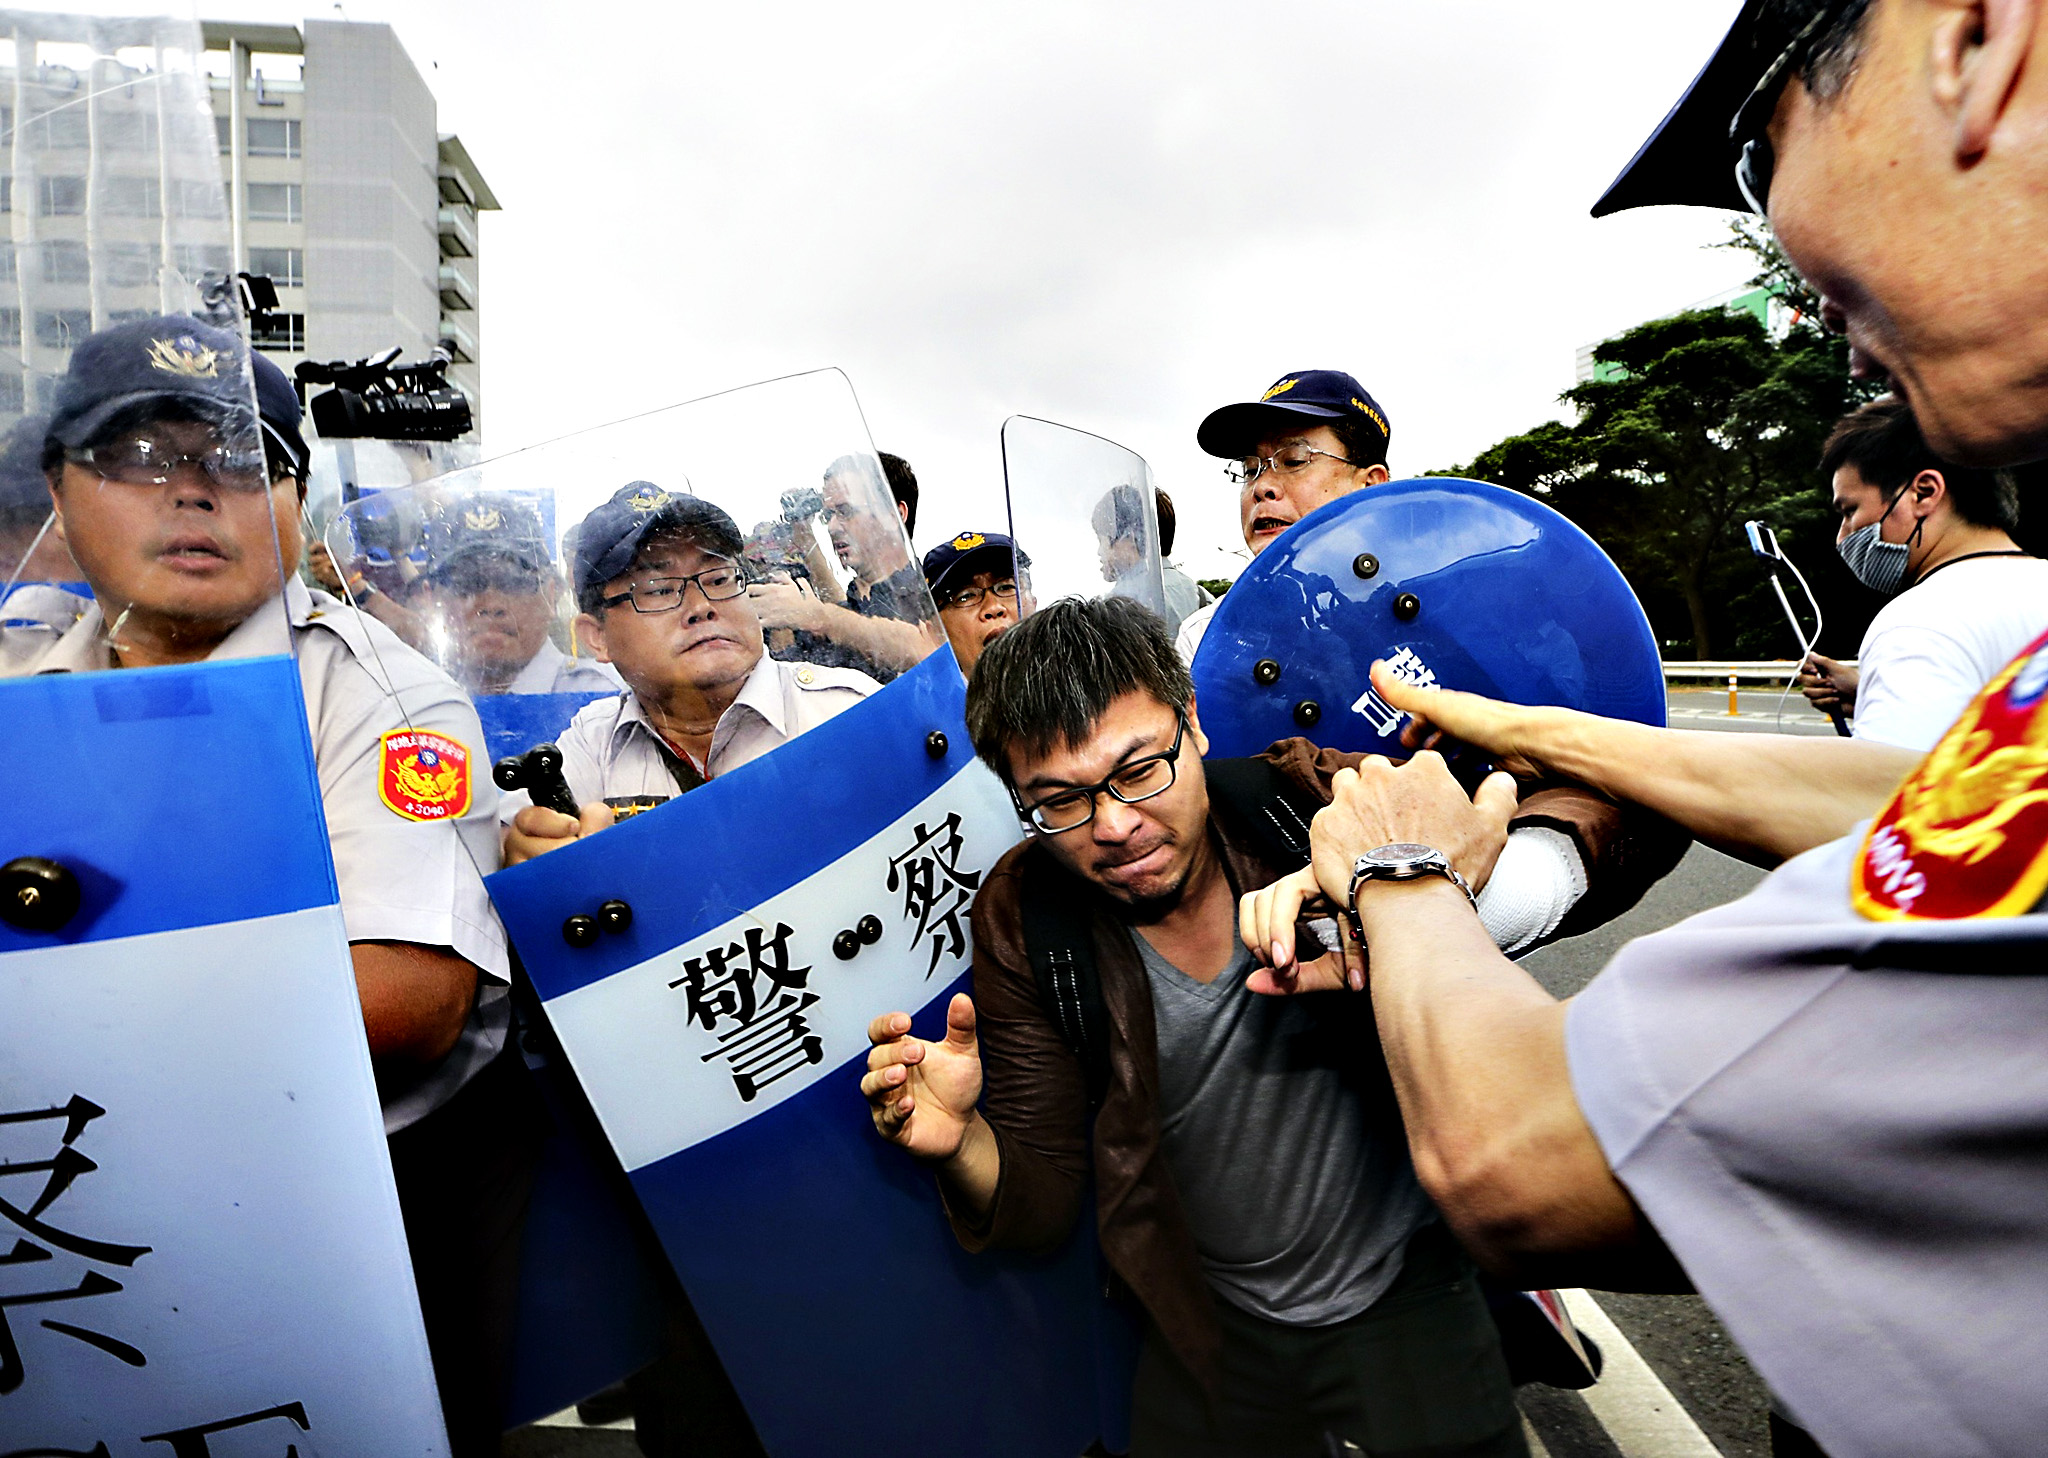 An pro-democracy activist scuffles with police officers while Zhang Zhijun, director of China's Taiwan Affairs Office meets with Taiwan's Mainland Affairs Council minister Wang Yu-chi, in Taoyuan June 25, 2014. Zhang, China's top official in charge of Taiwan ties will make a landmark visit to the island this week to try to woo Taiwanese who remain suspicious about a pending trade pact as well as meet a senior figure from the pro-independence opposition.